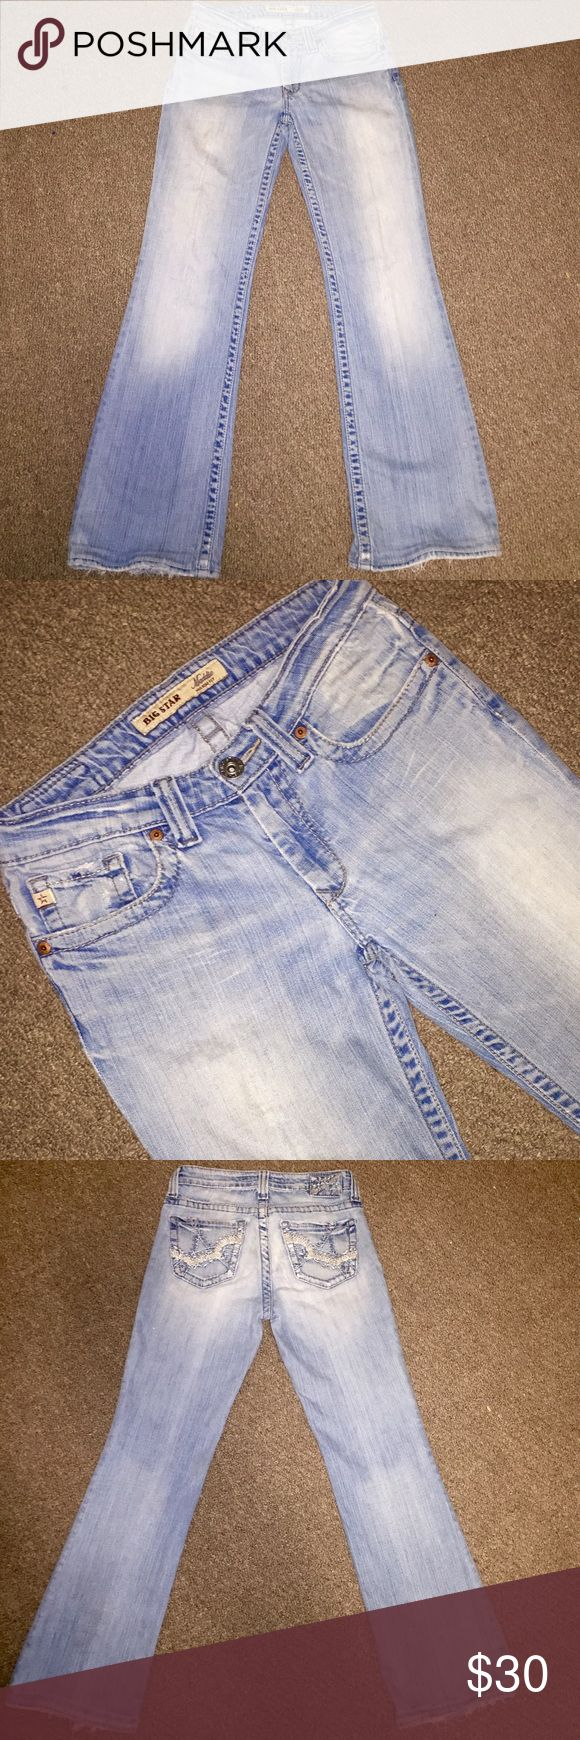 Big Star Maddie Mid-Rise Fit From the Buckle store- Big Star Maddie Mid-Rise Fit Women's Light Wash Designer Jeans in size 26 with an inseam of 30. In really great condition 👍🏻👍🏻🎉 Big Star Jeans Boot Cut